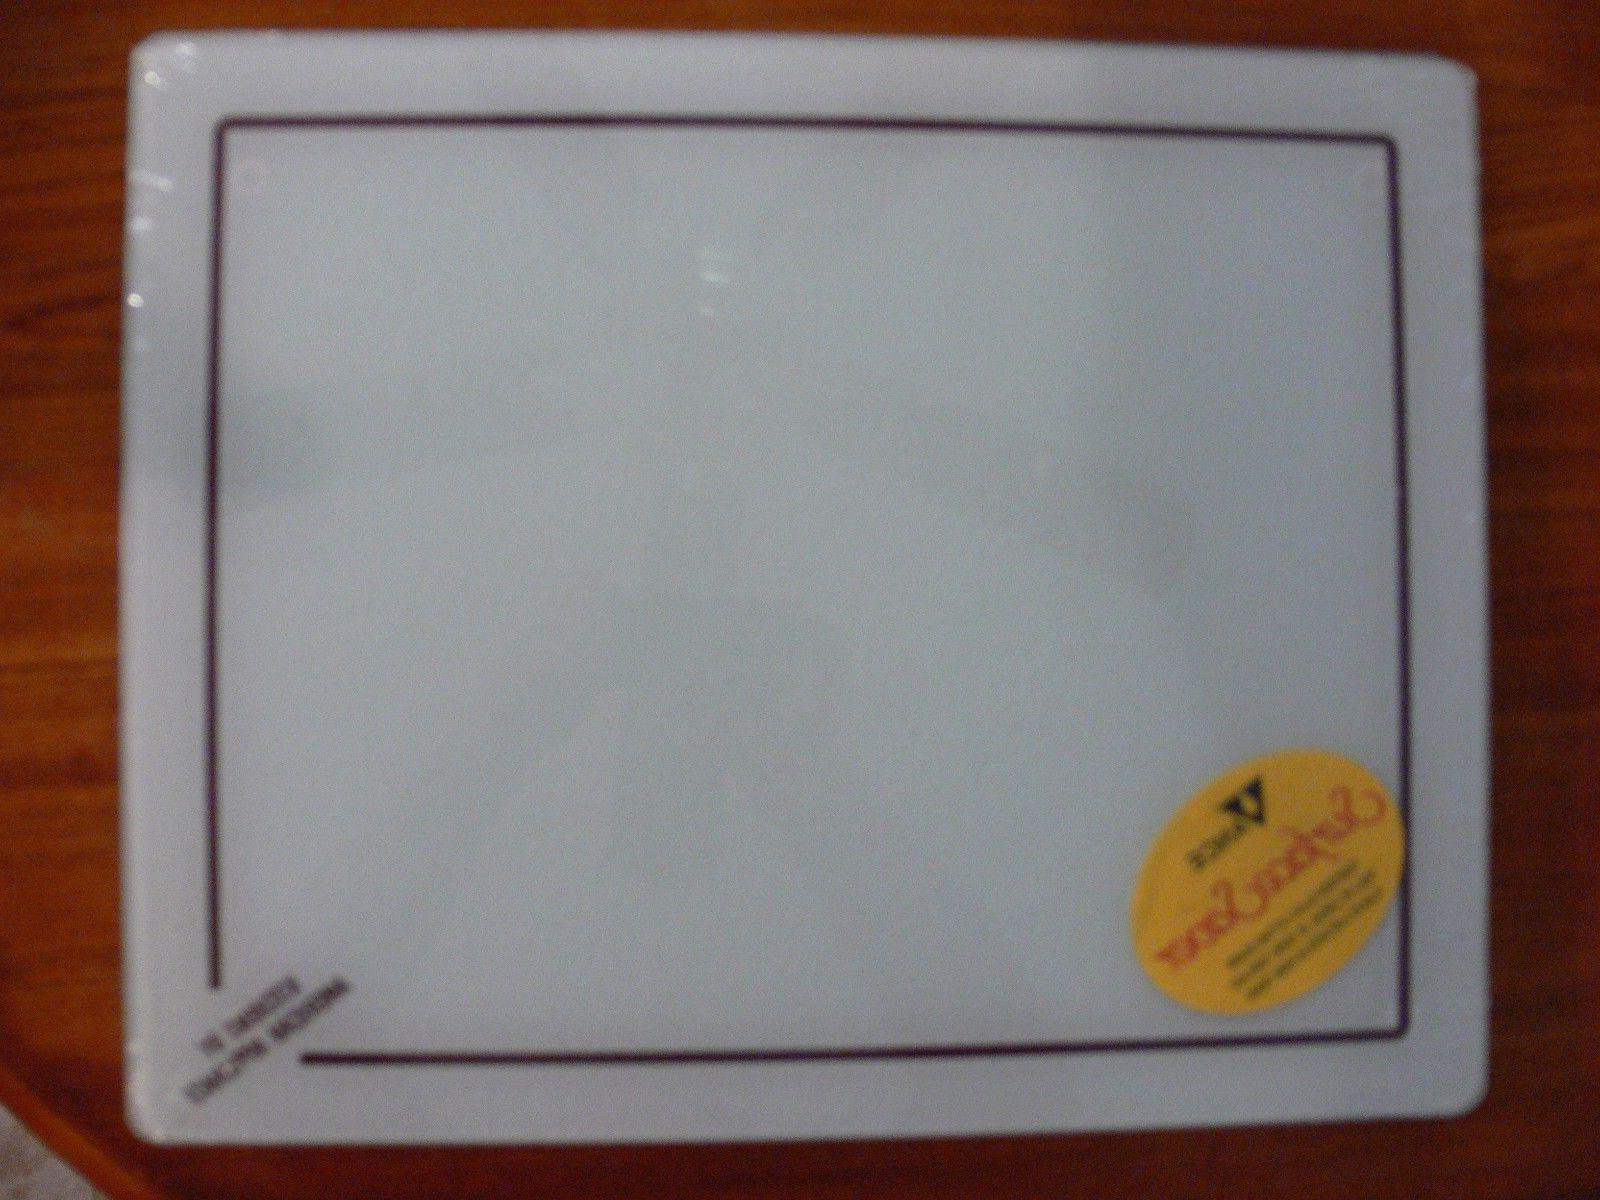 "New Vance Glass Cutting Board 16"" x 20"" Tempered Surface Sav"